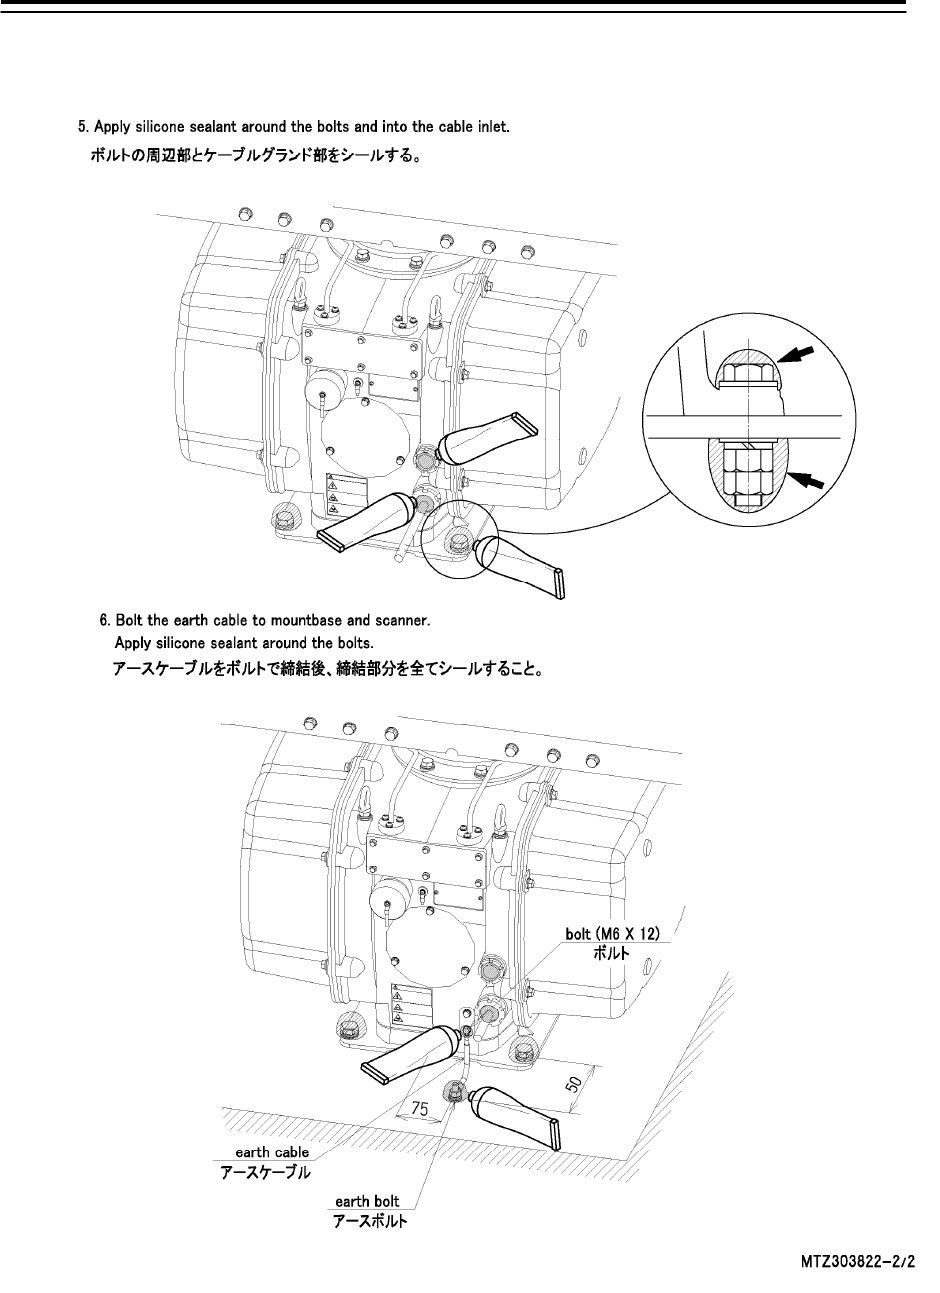 Japan Radio Co Nke2632 Solid State S Band Marine Radar User Manual Vector 9000 Gps Wiring Diagram Installation Of Scanner Unit 22 For The Specified Model